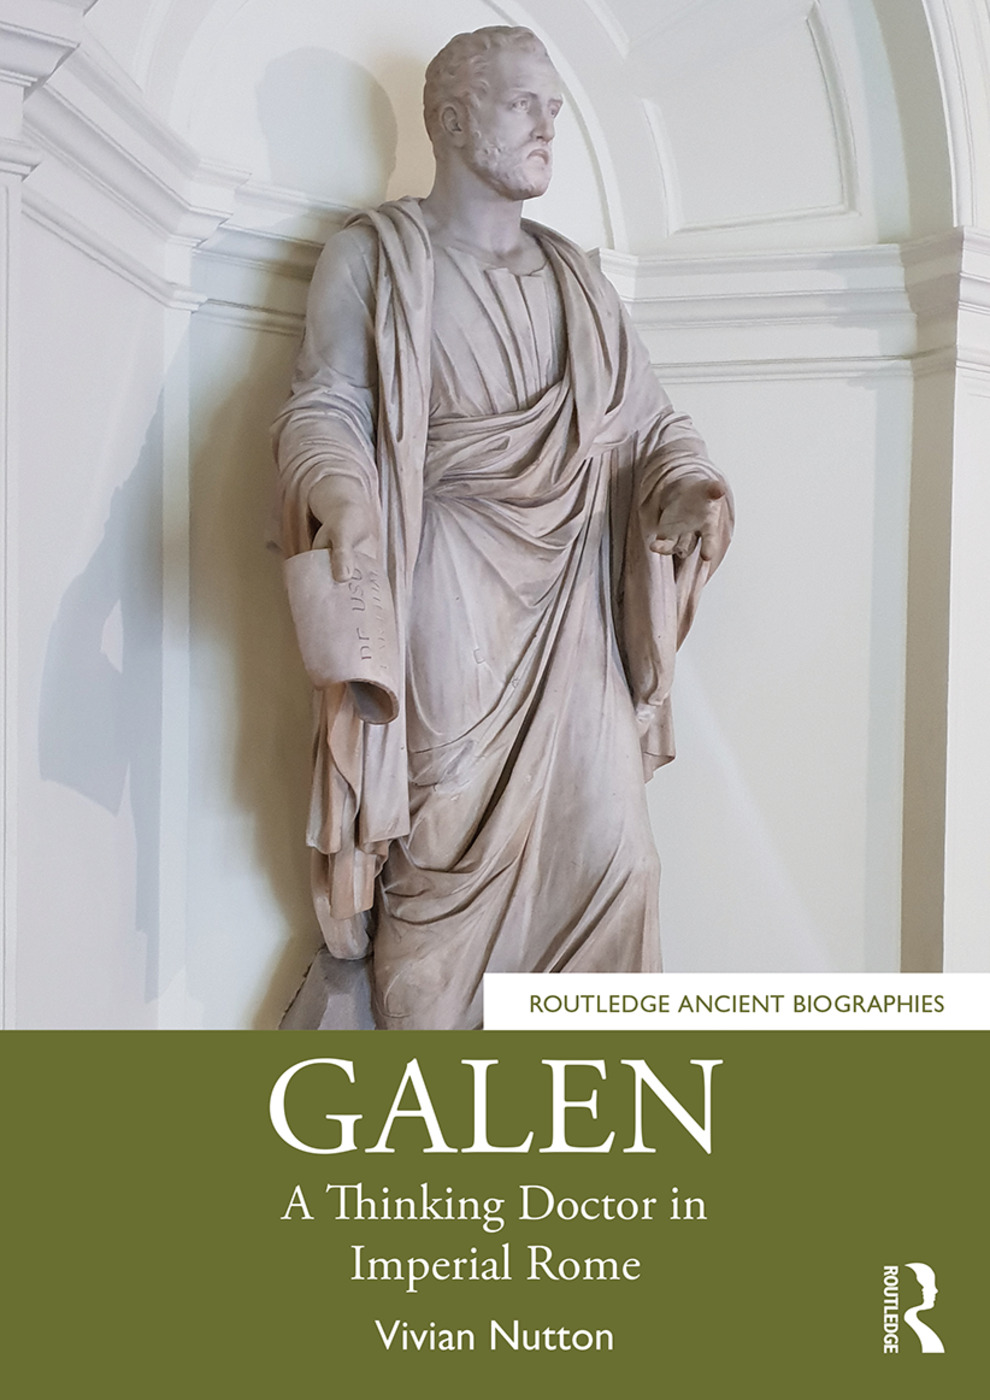 Galen: A Thinking Doctor in Imperial Rome book cover